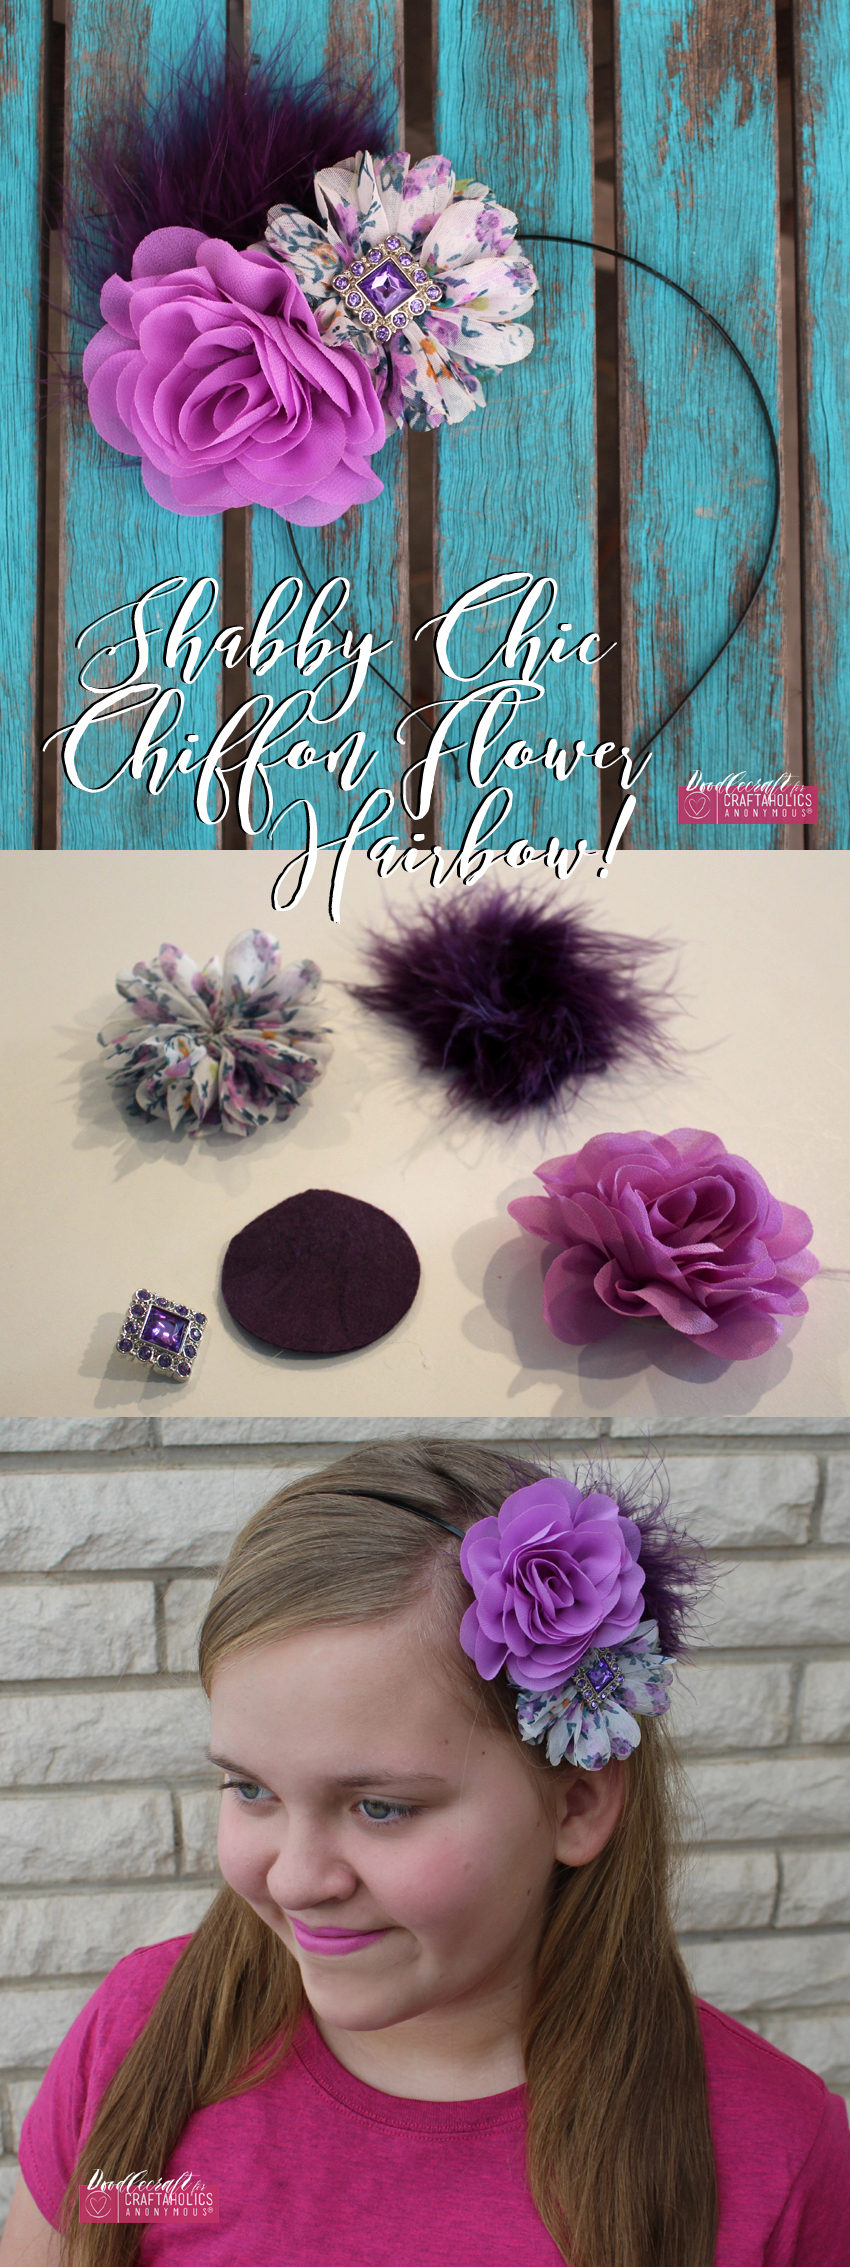 Make this beautiful Shabby Chic headband! Find the tutorial at Craftaholics Anonymous®